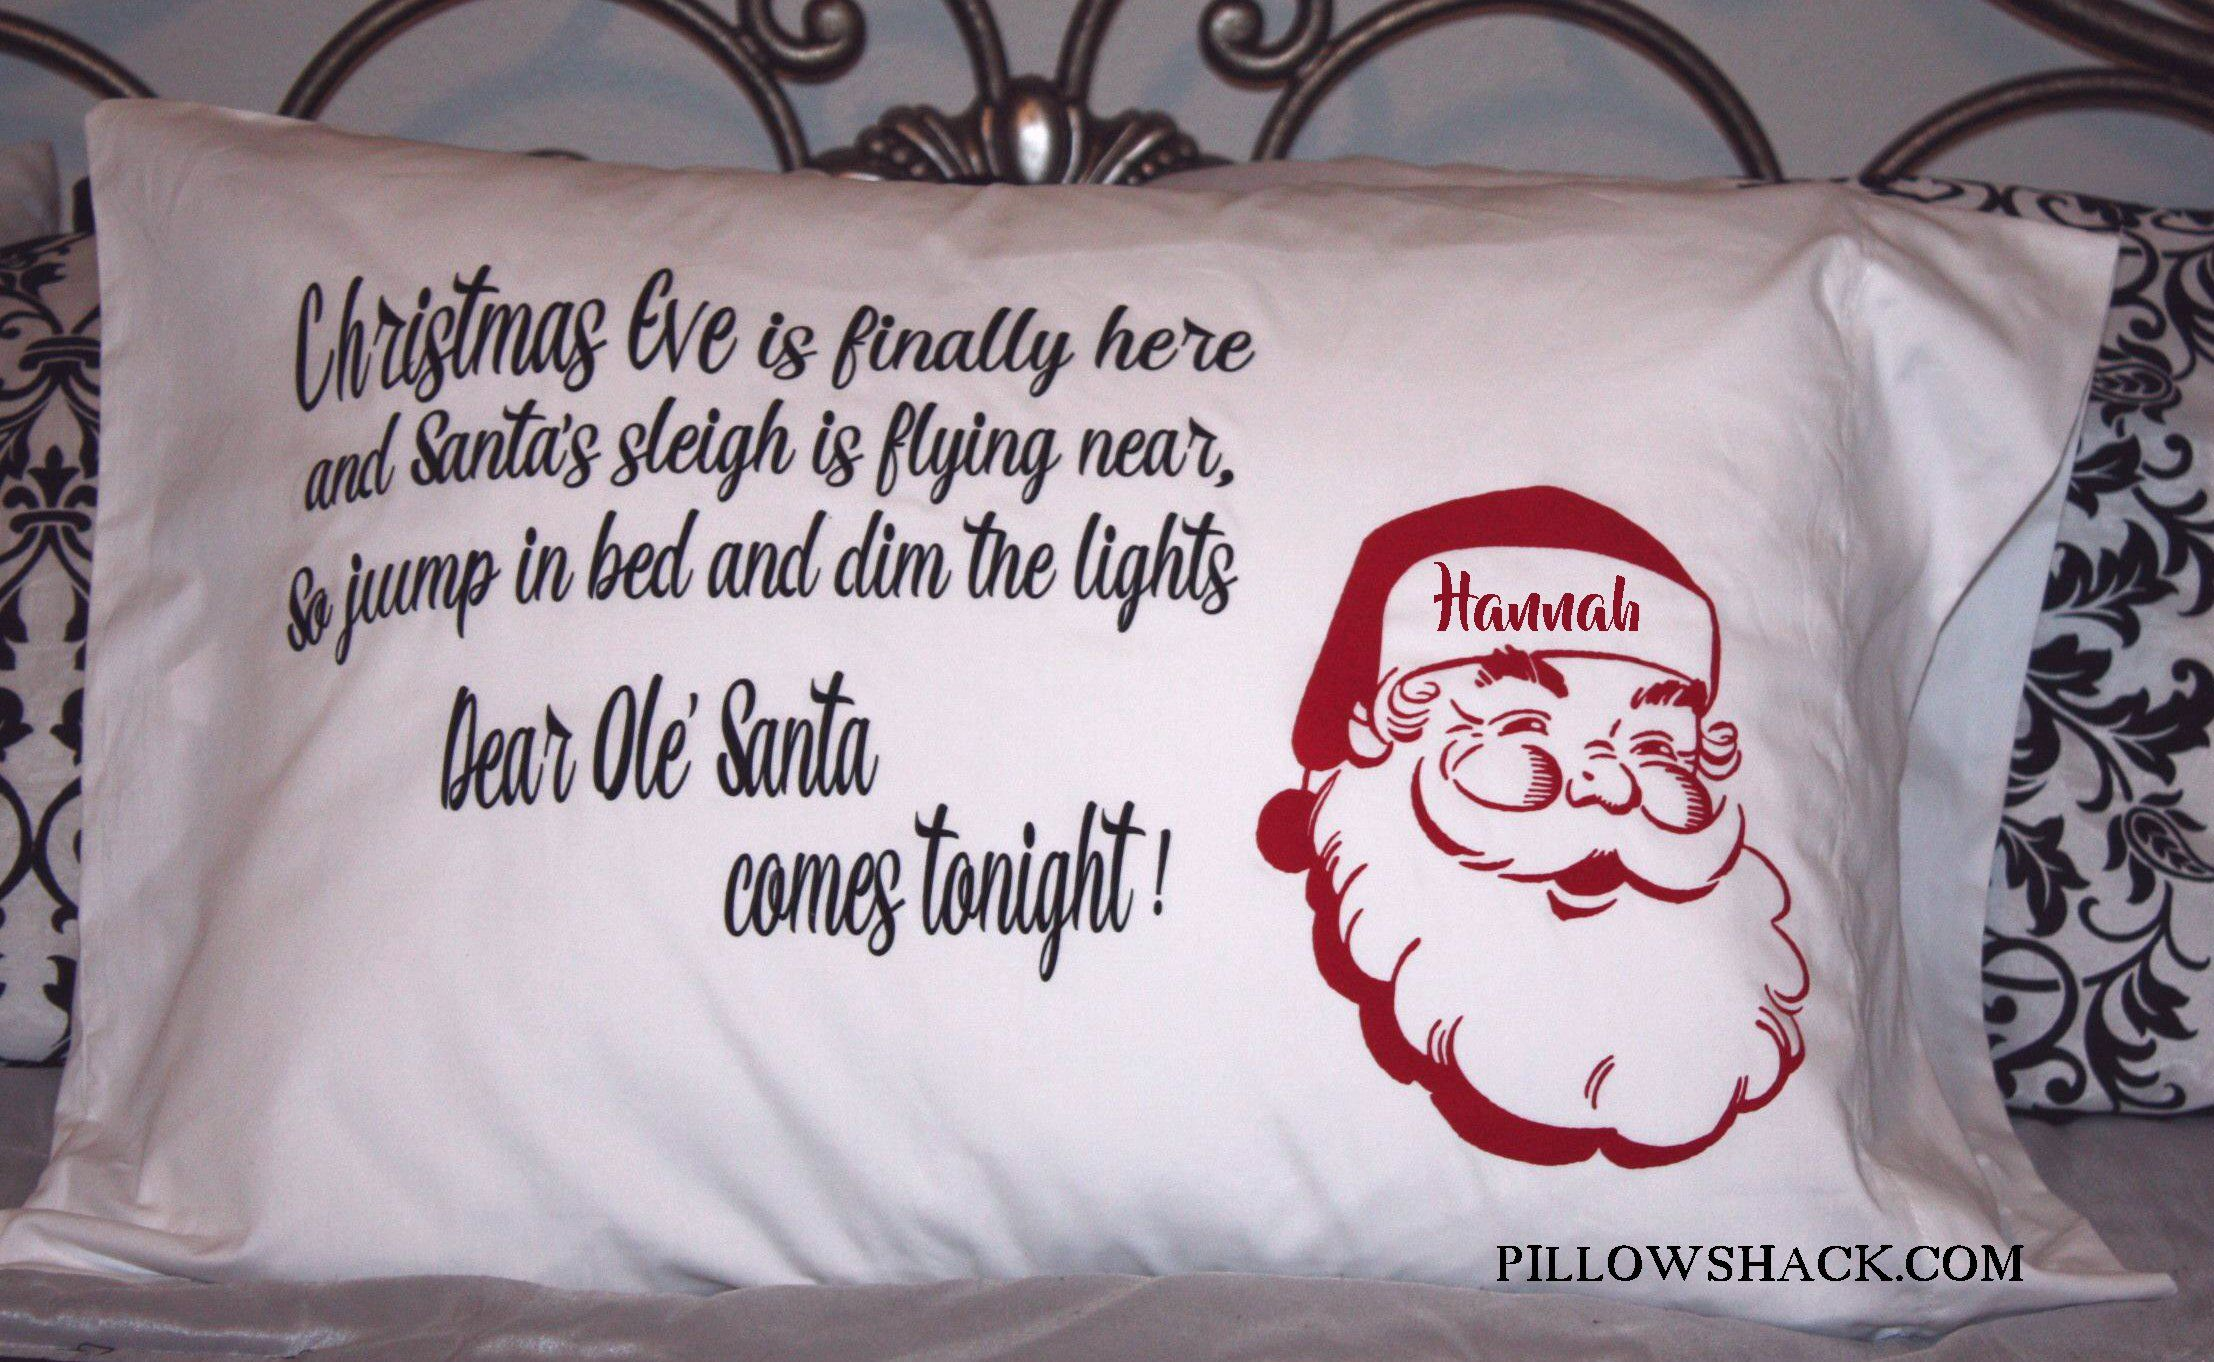 Personalized Christmas Pillowcase Great for making Christmas